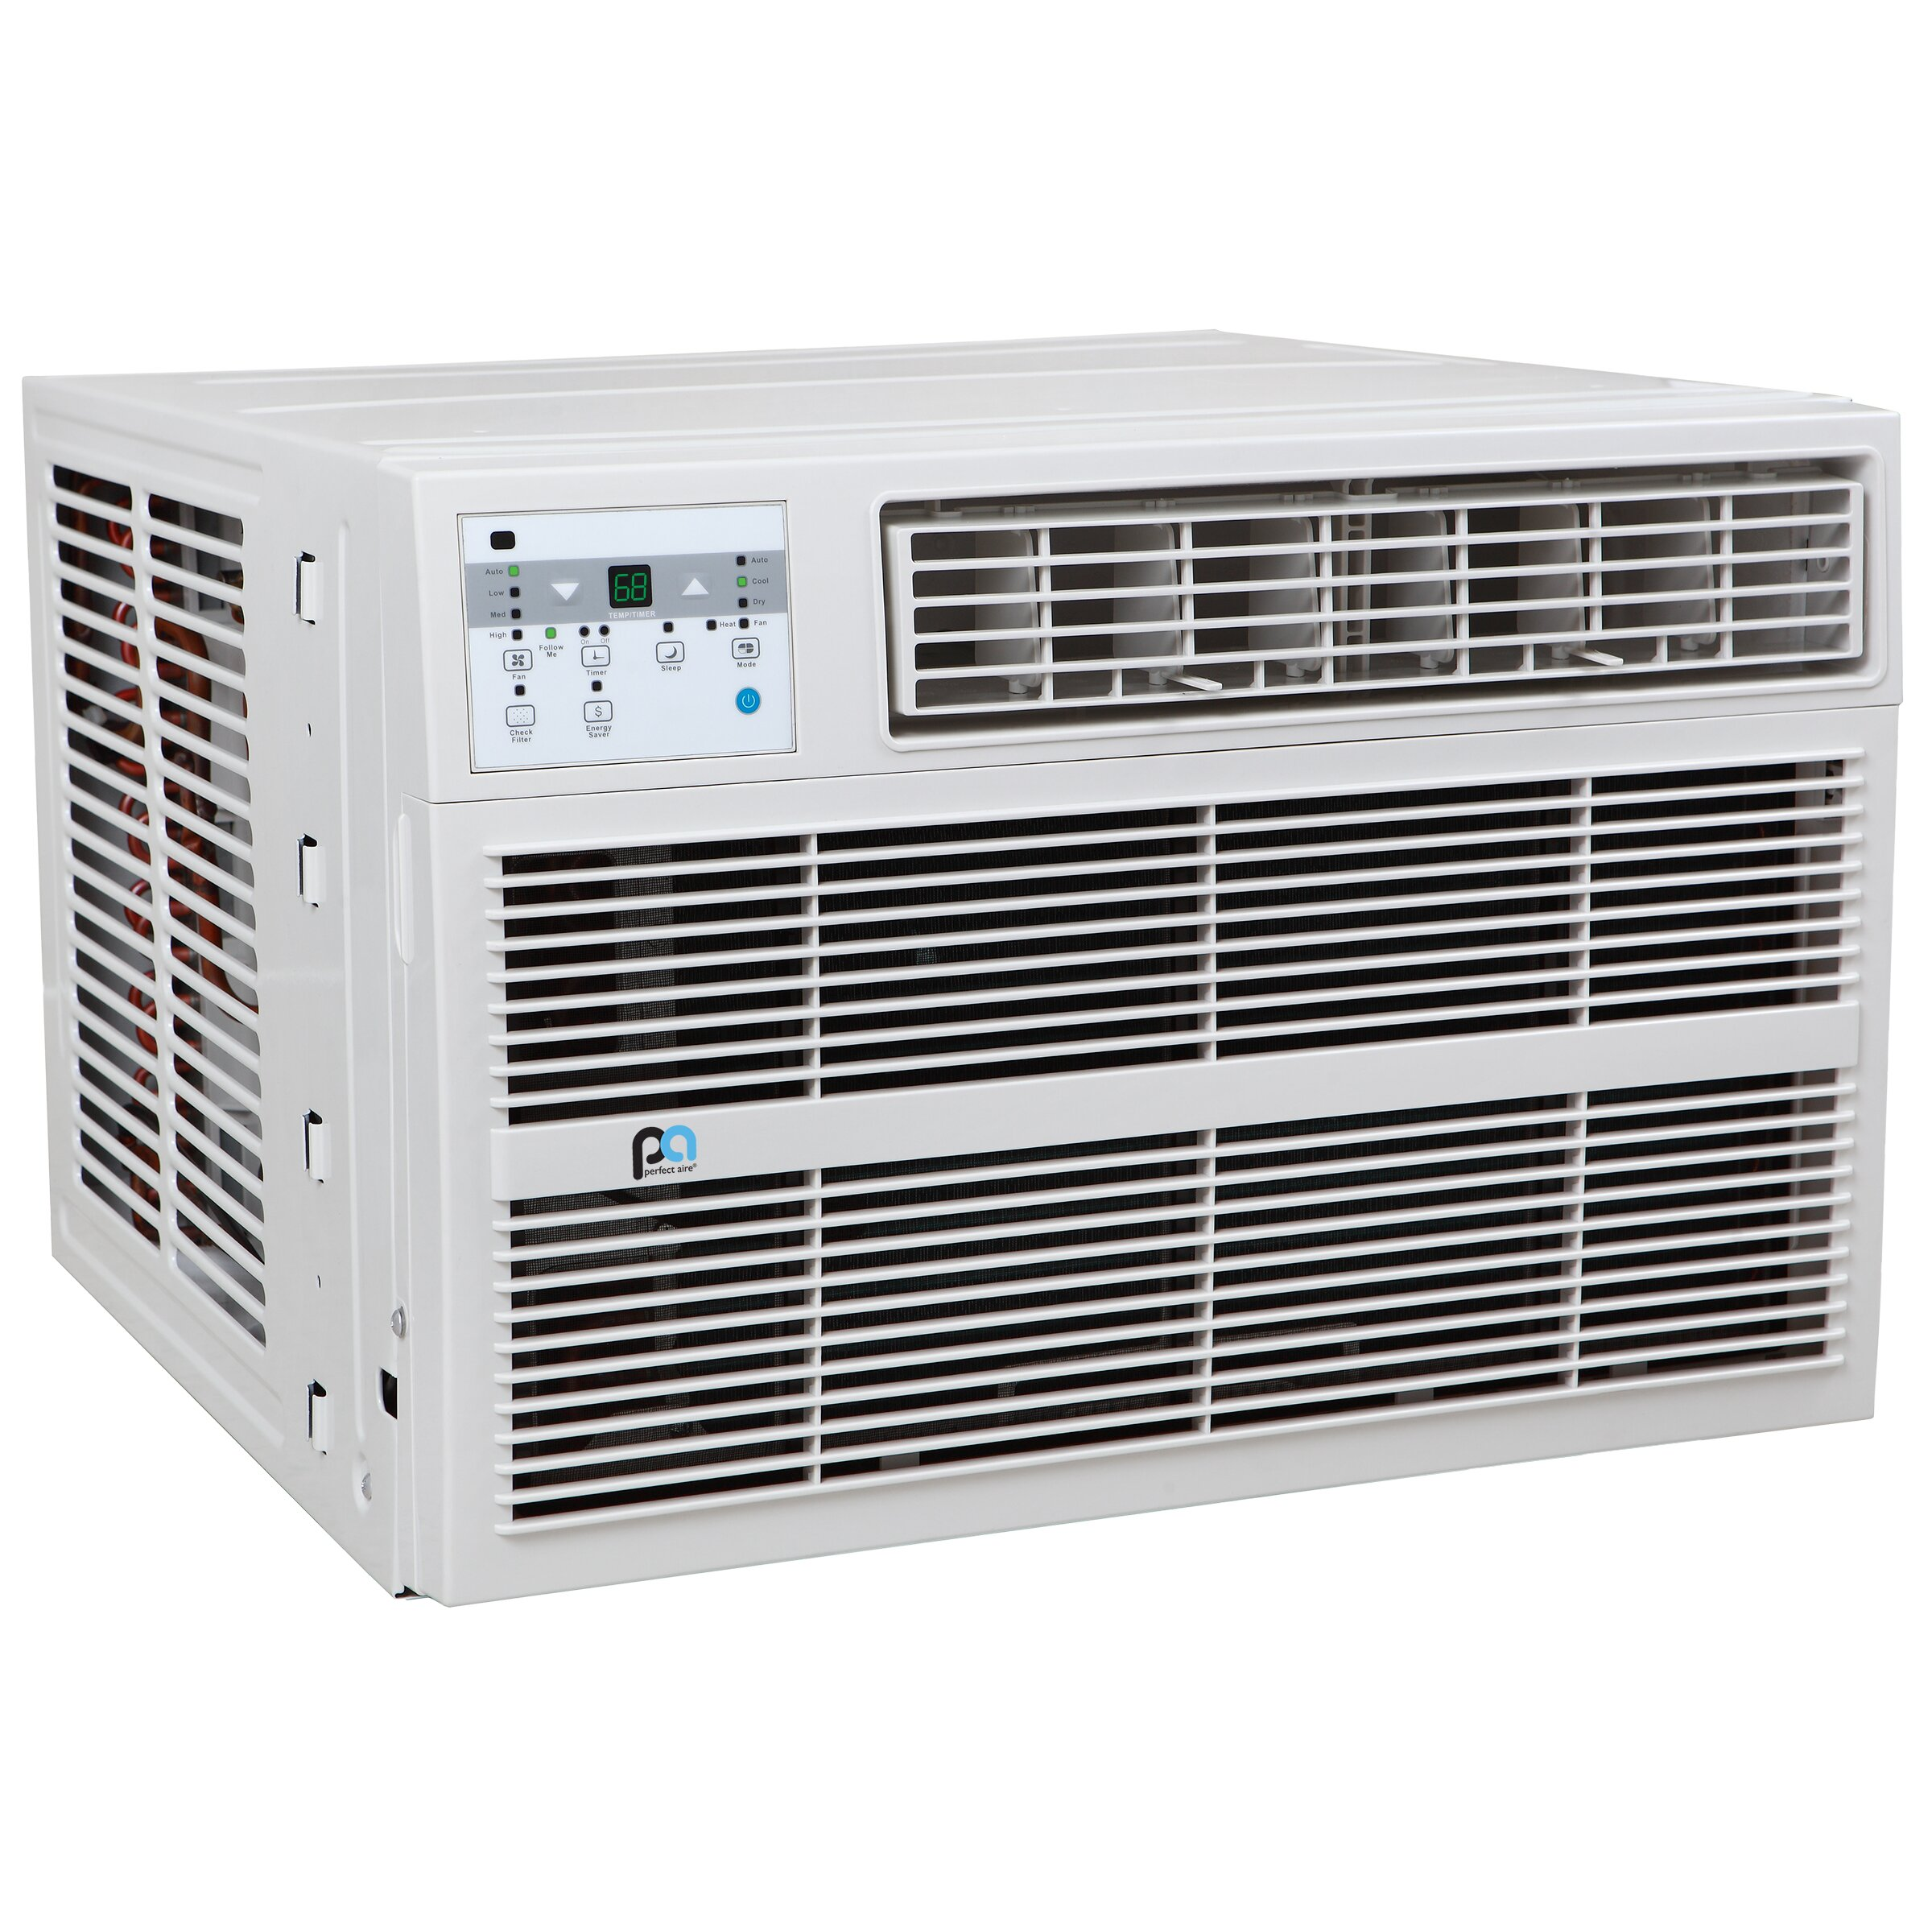 8000 BTU Energy Star Window Air Conditioner with Remote by PerfectAire #5B4945